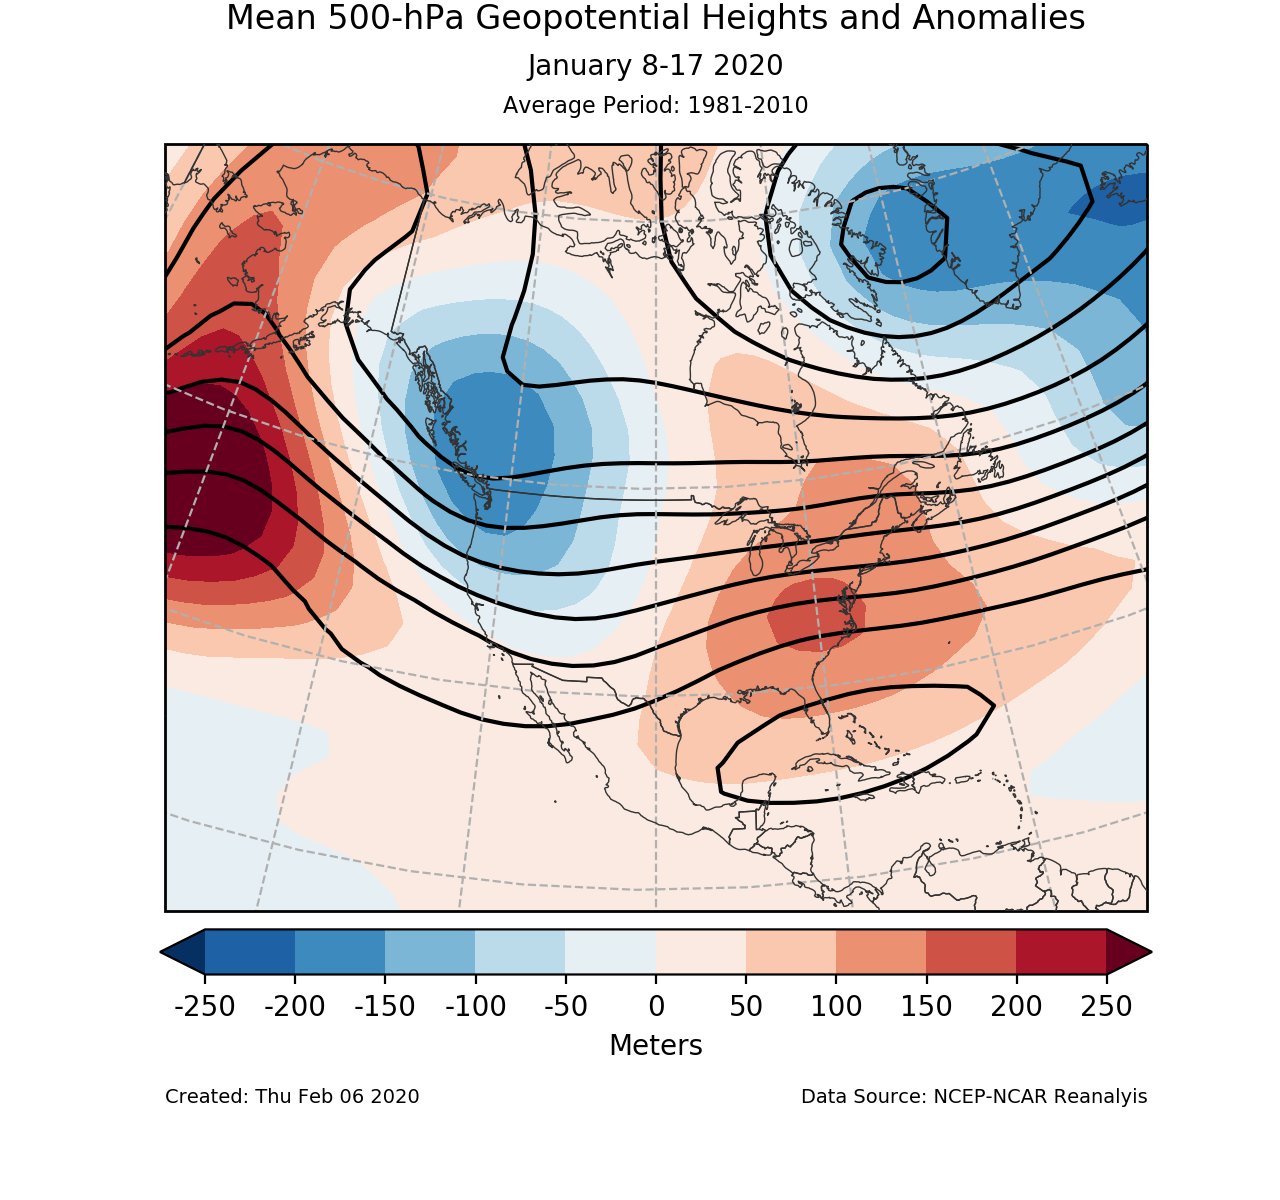 500-mb circulation anomalies for North America for January 8-17 2020